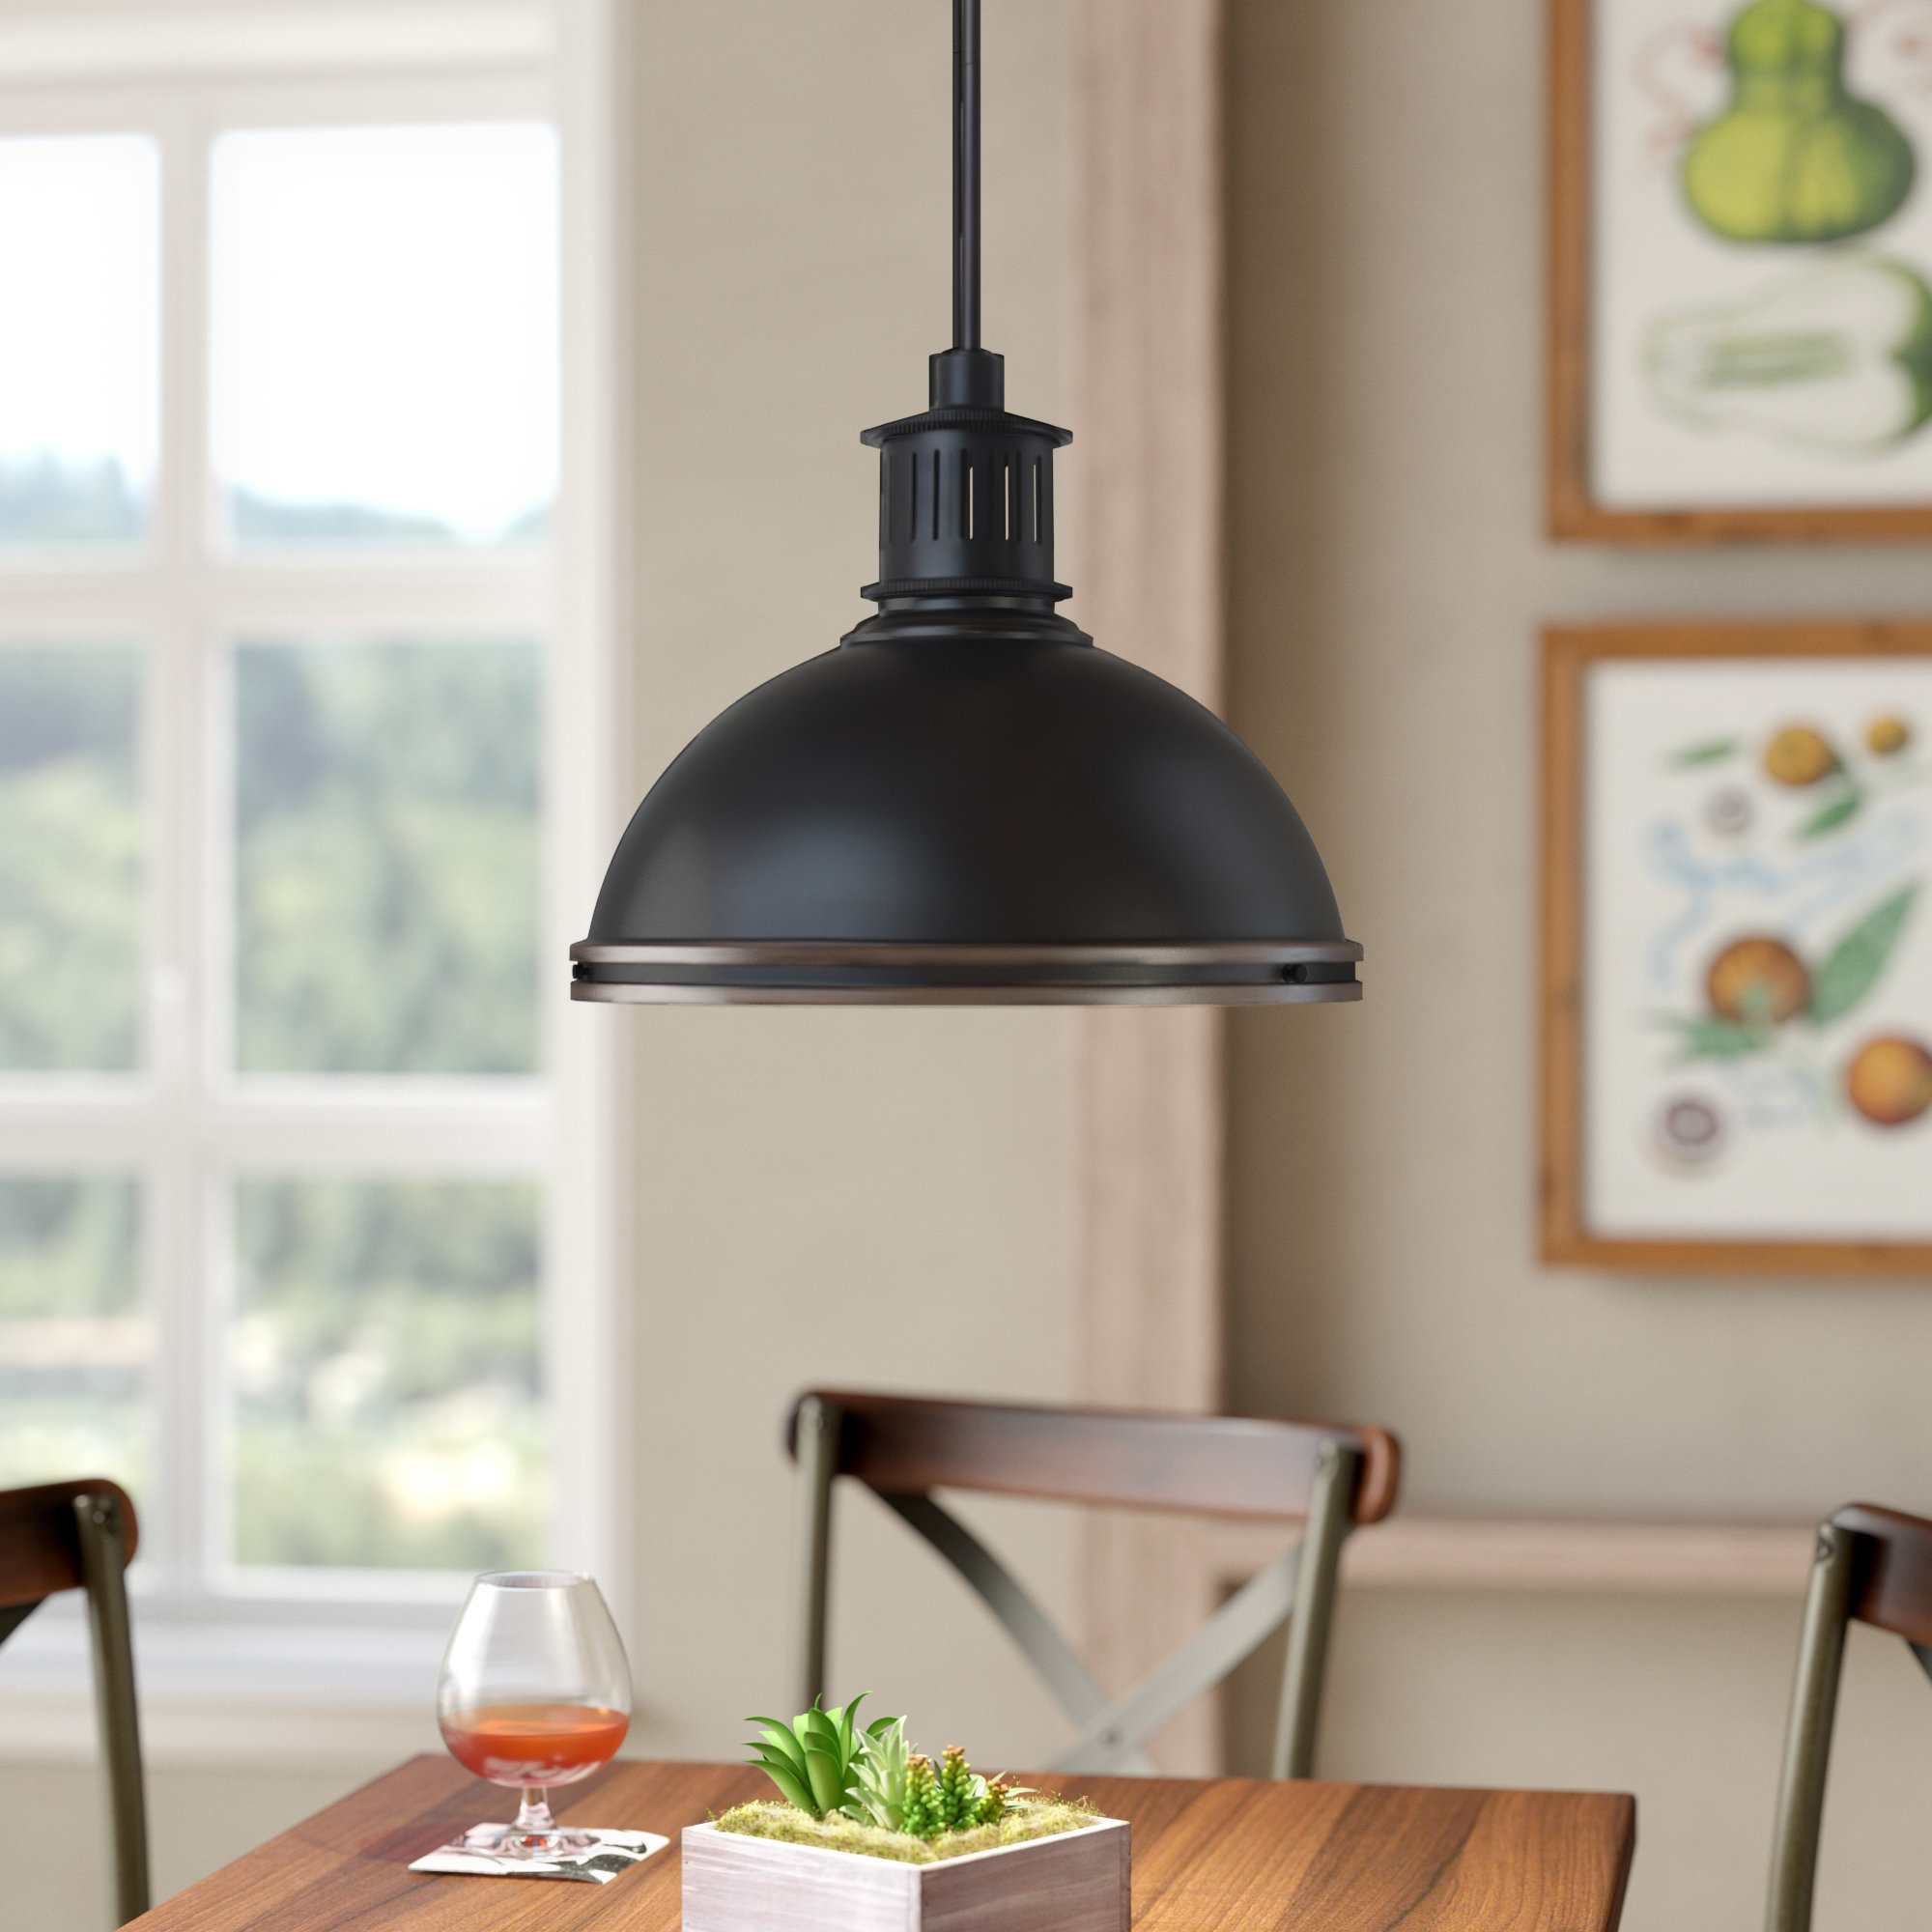 Orchard Hill 3 Light Dome Pendant Regarding Best And Newest Amara 3 Light Dome Pendants (View 4 of 25)